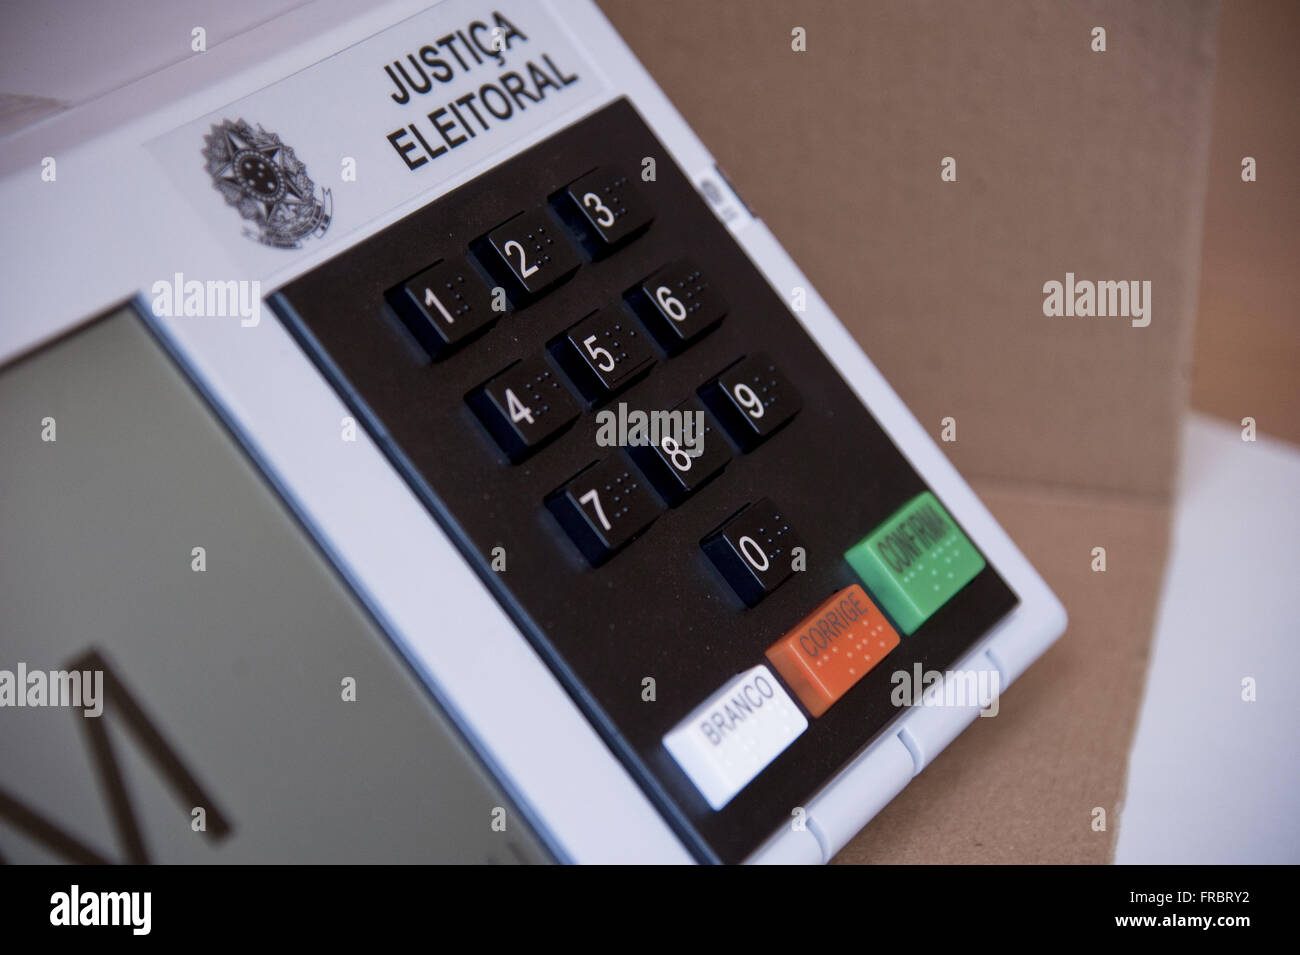 Electronic ballot - voter terminal with numeric keypad and braille - Stock Image